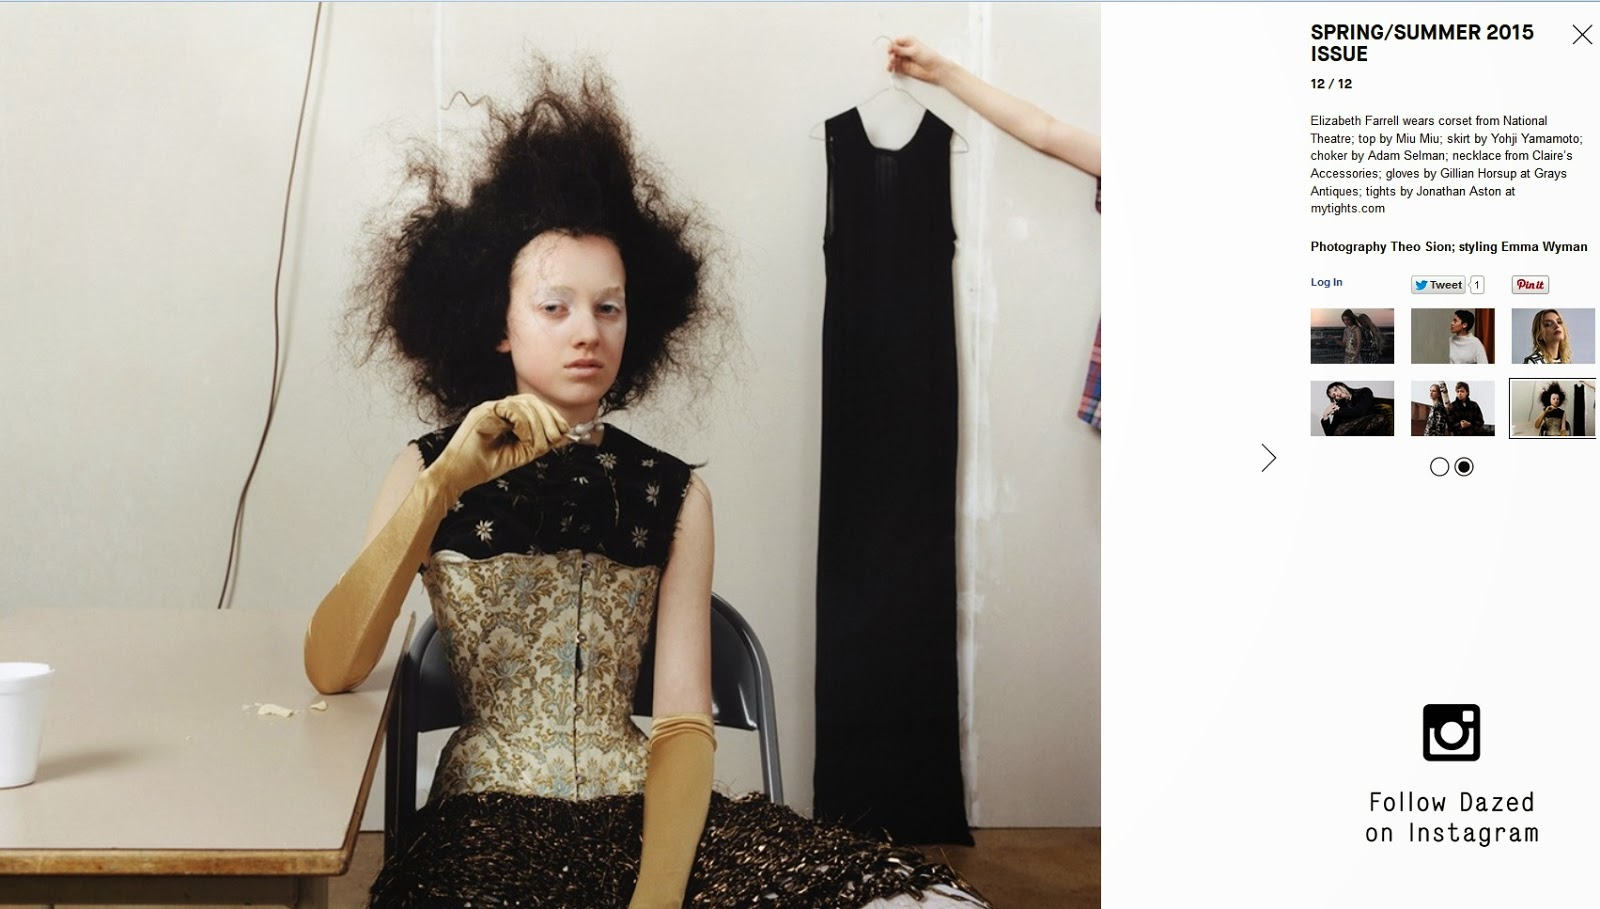 http://www.dazeddigital.com/artsandculture/gallery/19597/11/spring-summer-2015-issue